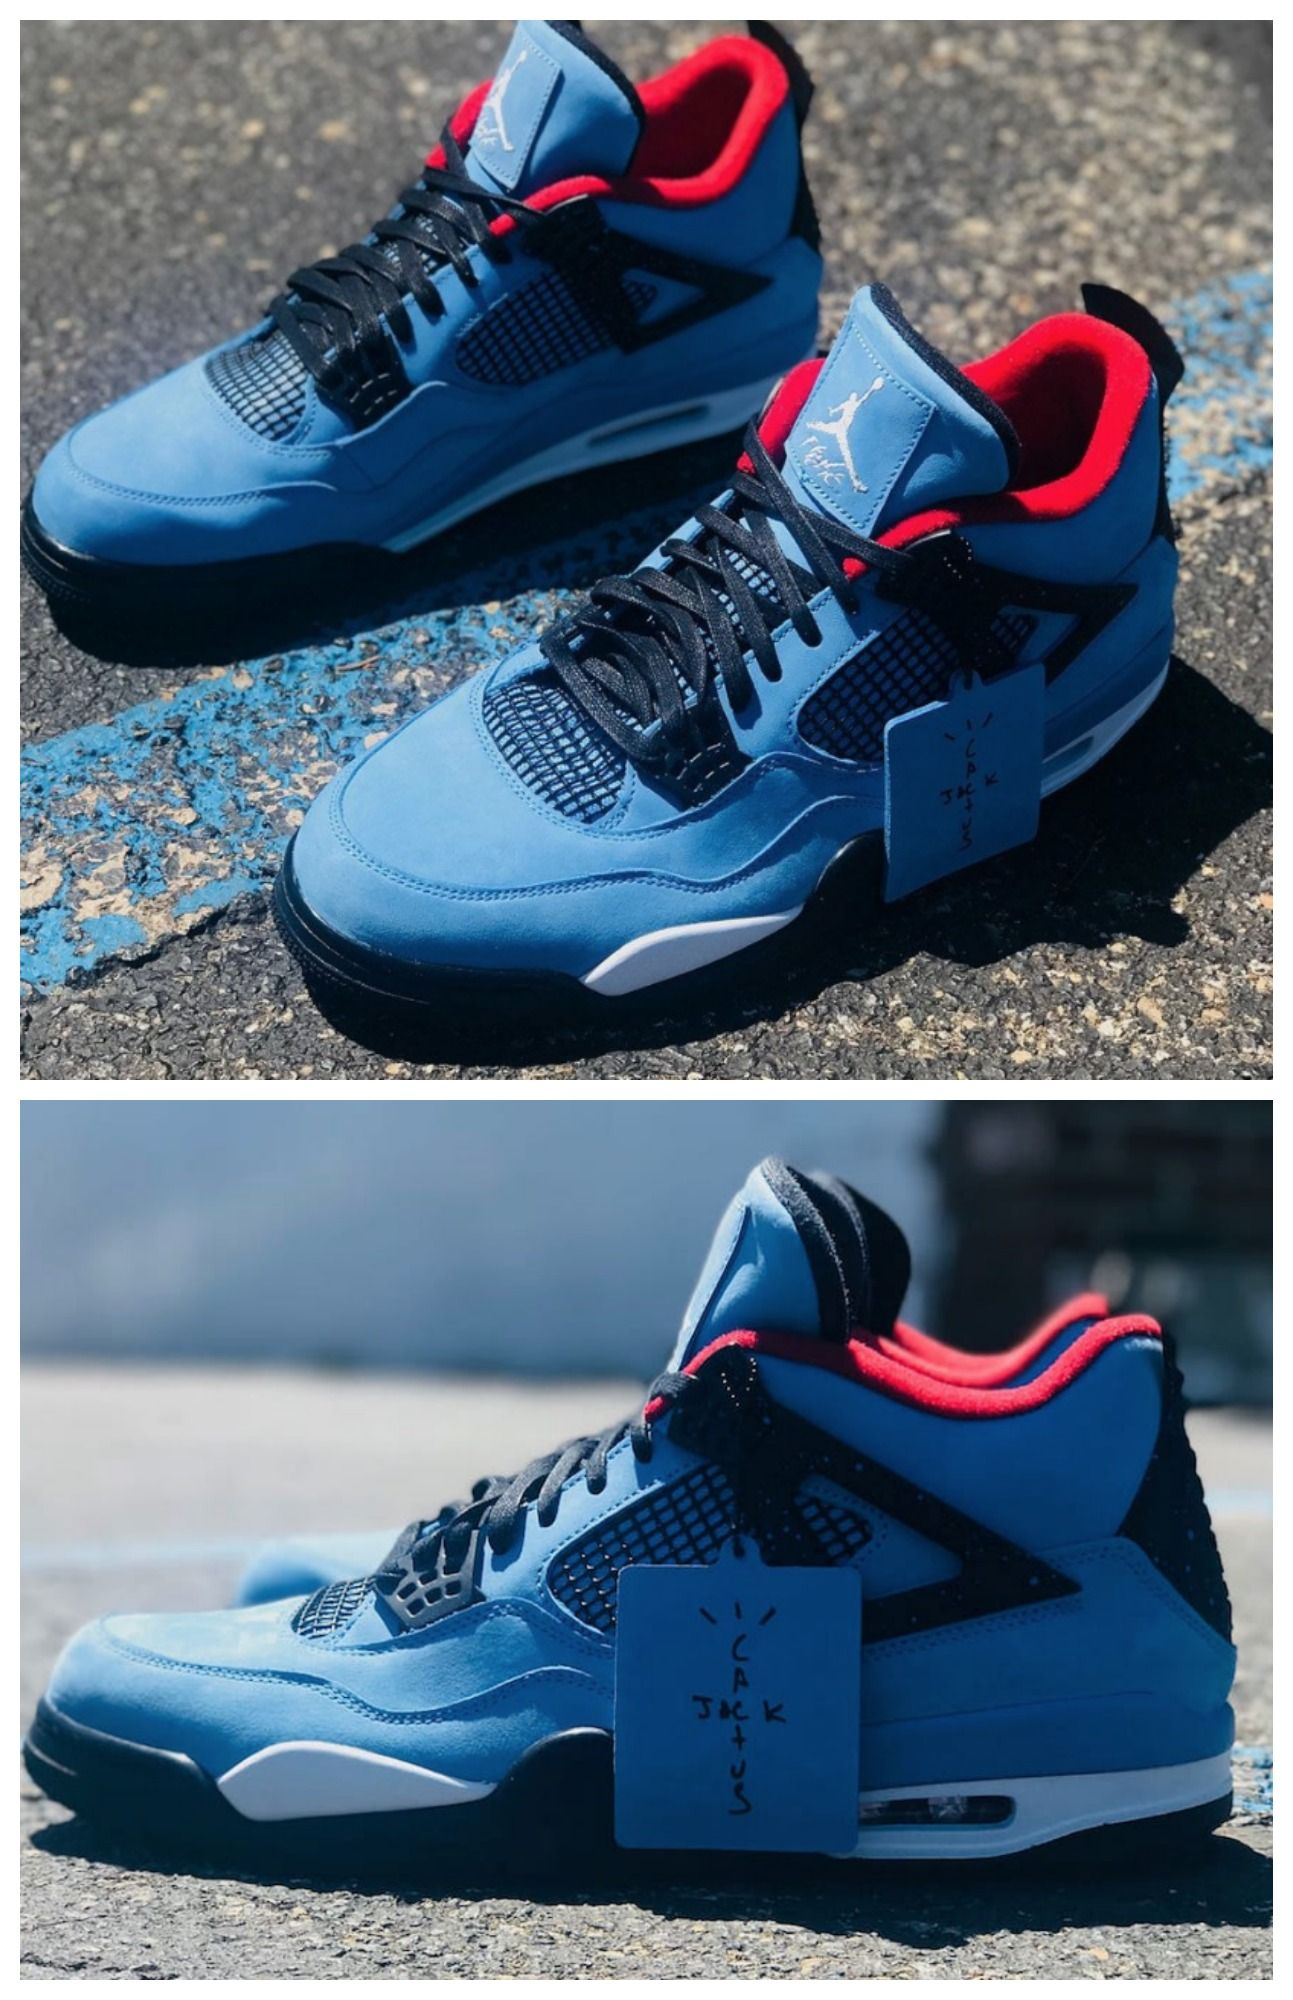 b0d84fe0063a37 Travis Scott x Air Jordan 4